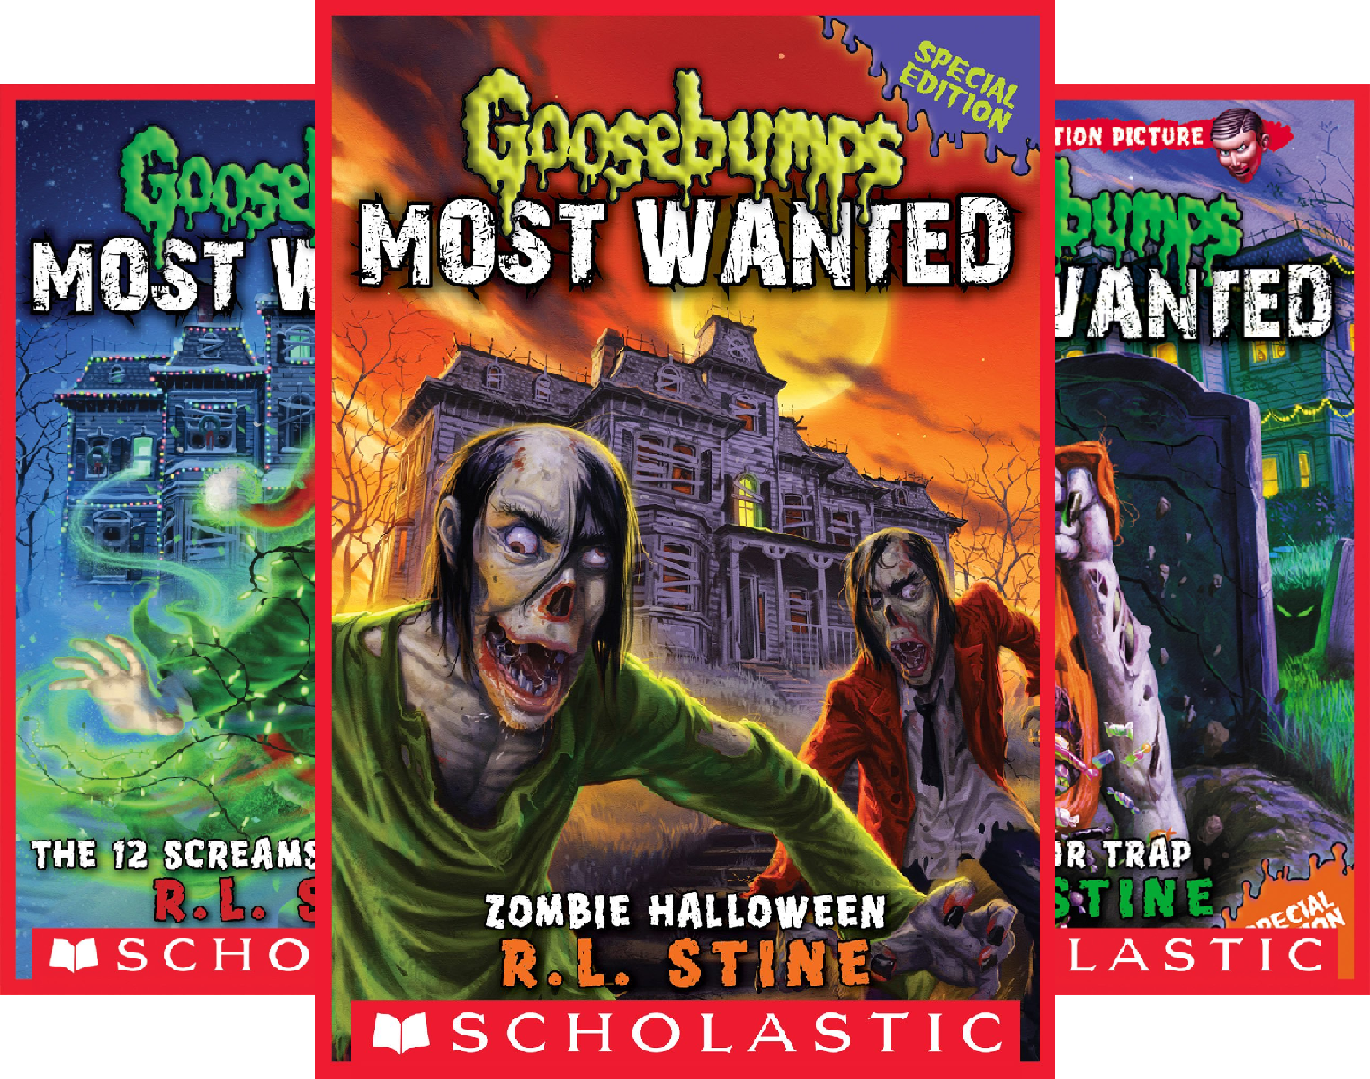 Goosebumps Most Wanted Special Edition (3 Book -